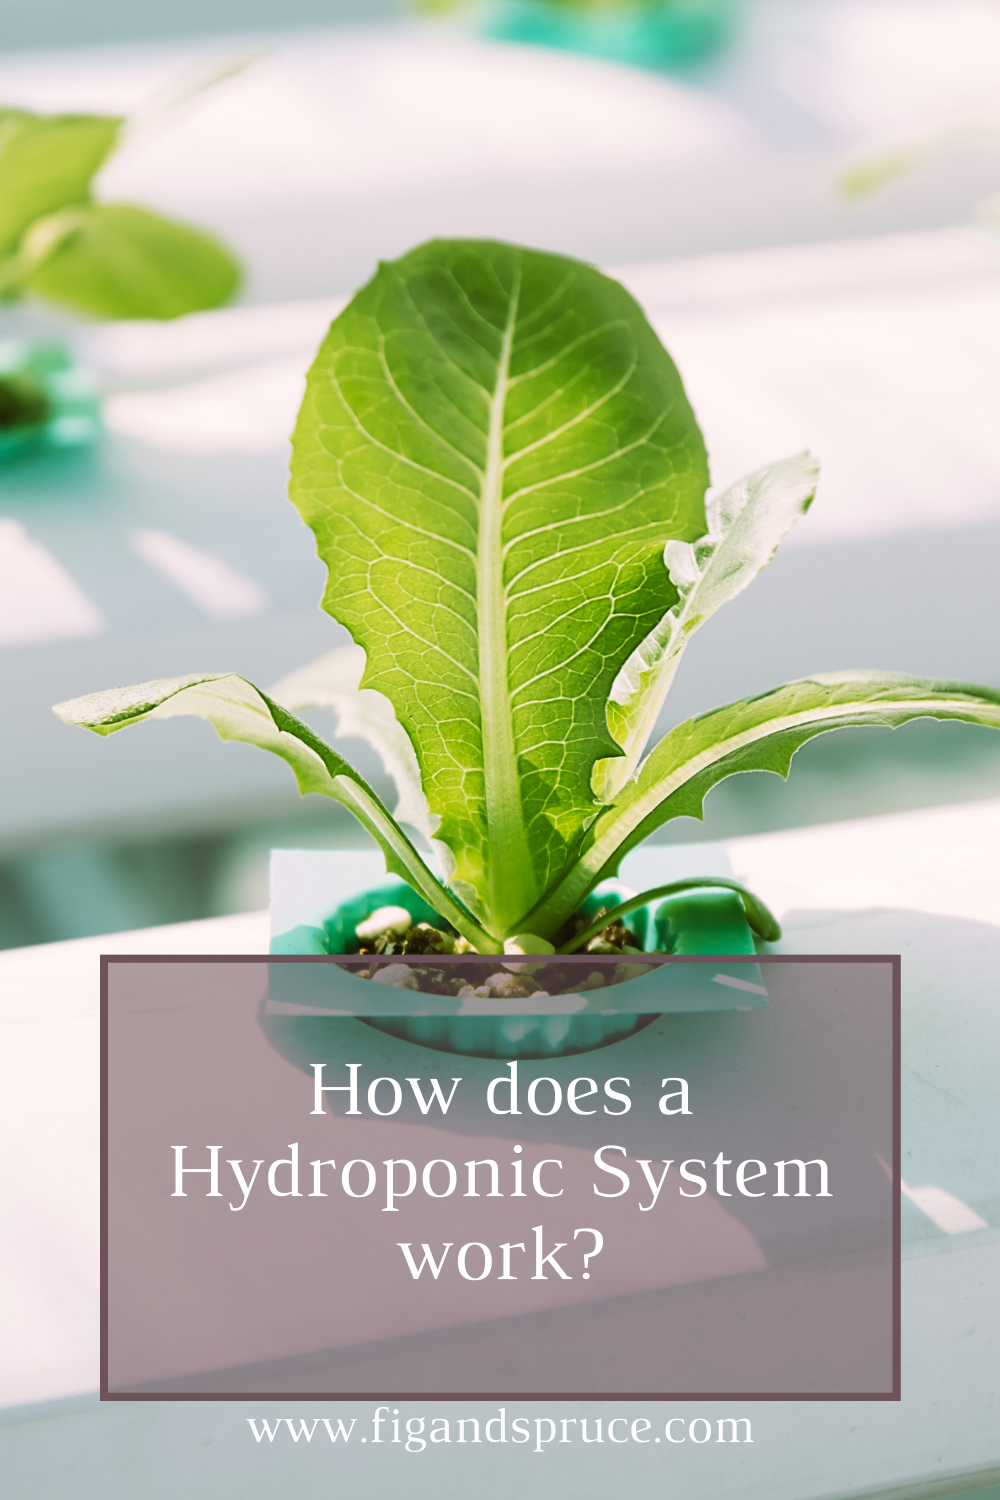 How Does a Hydroponic System Work?